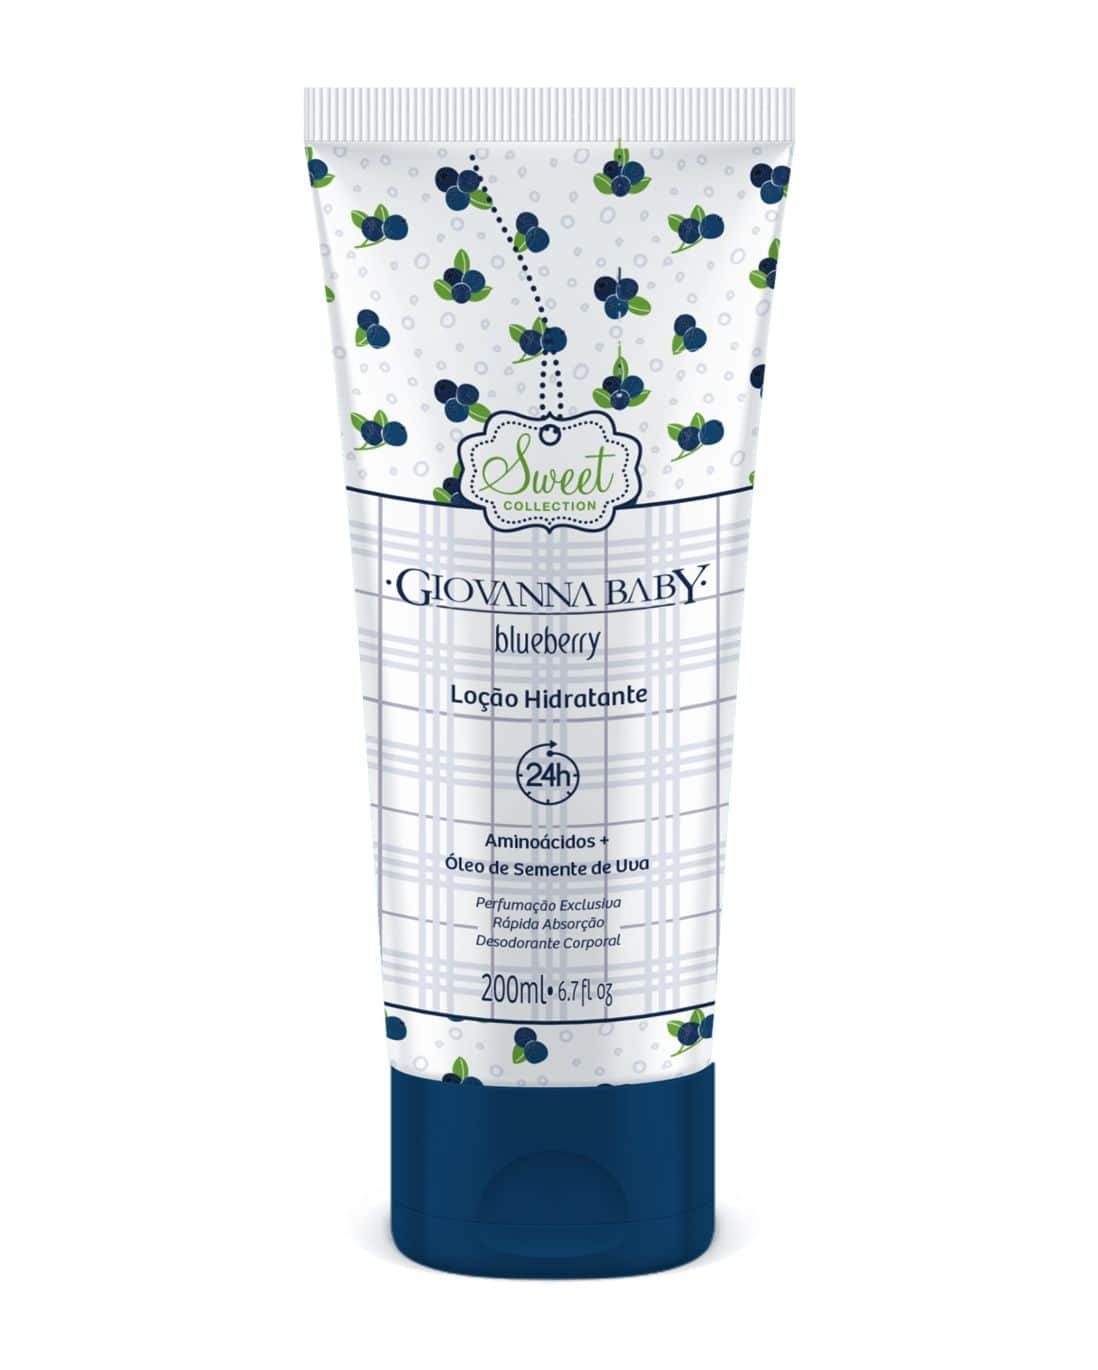 Loção Hidratante GB Blueberry Giovanna Baby 200ml